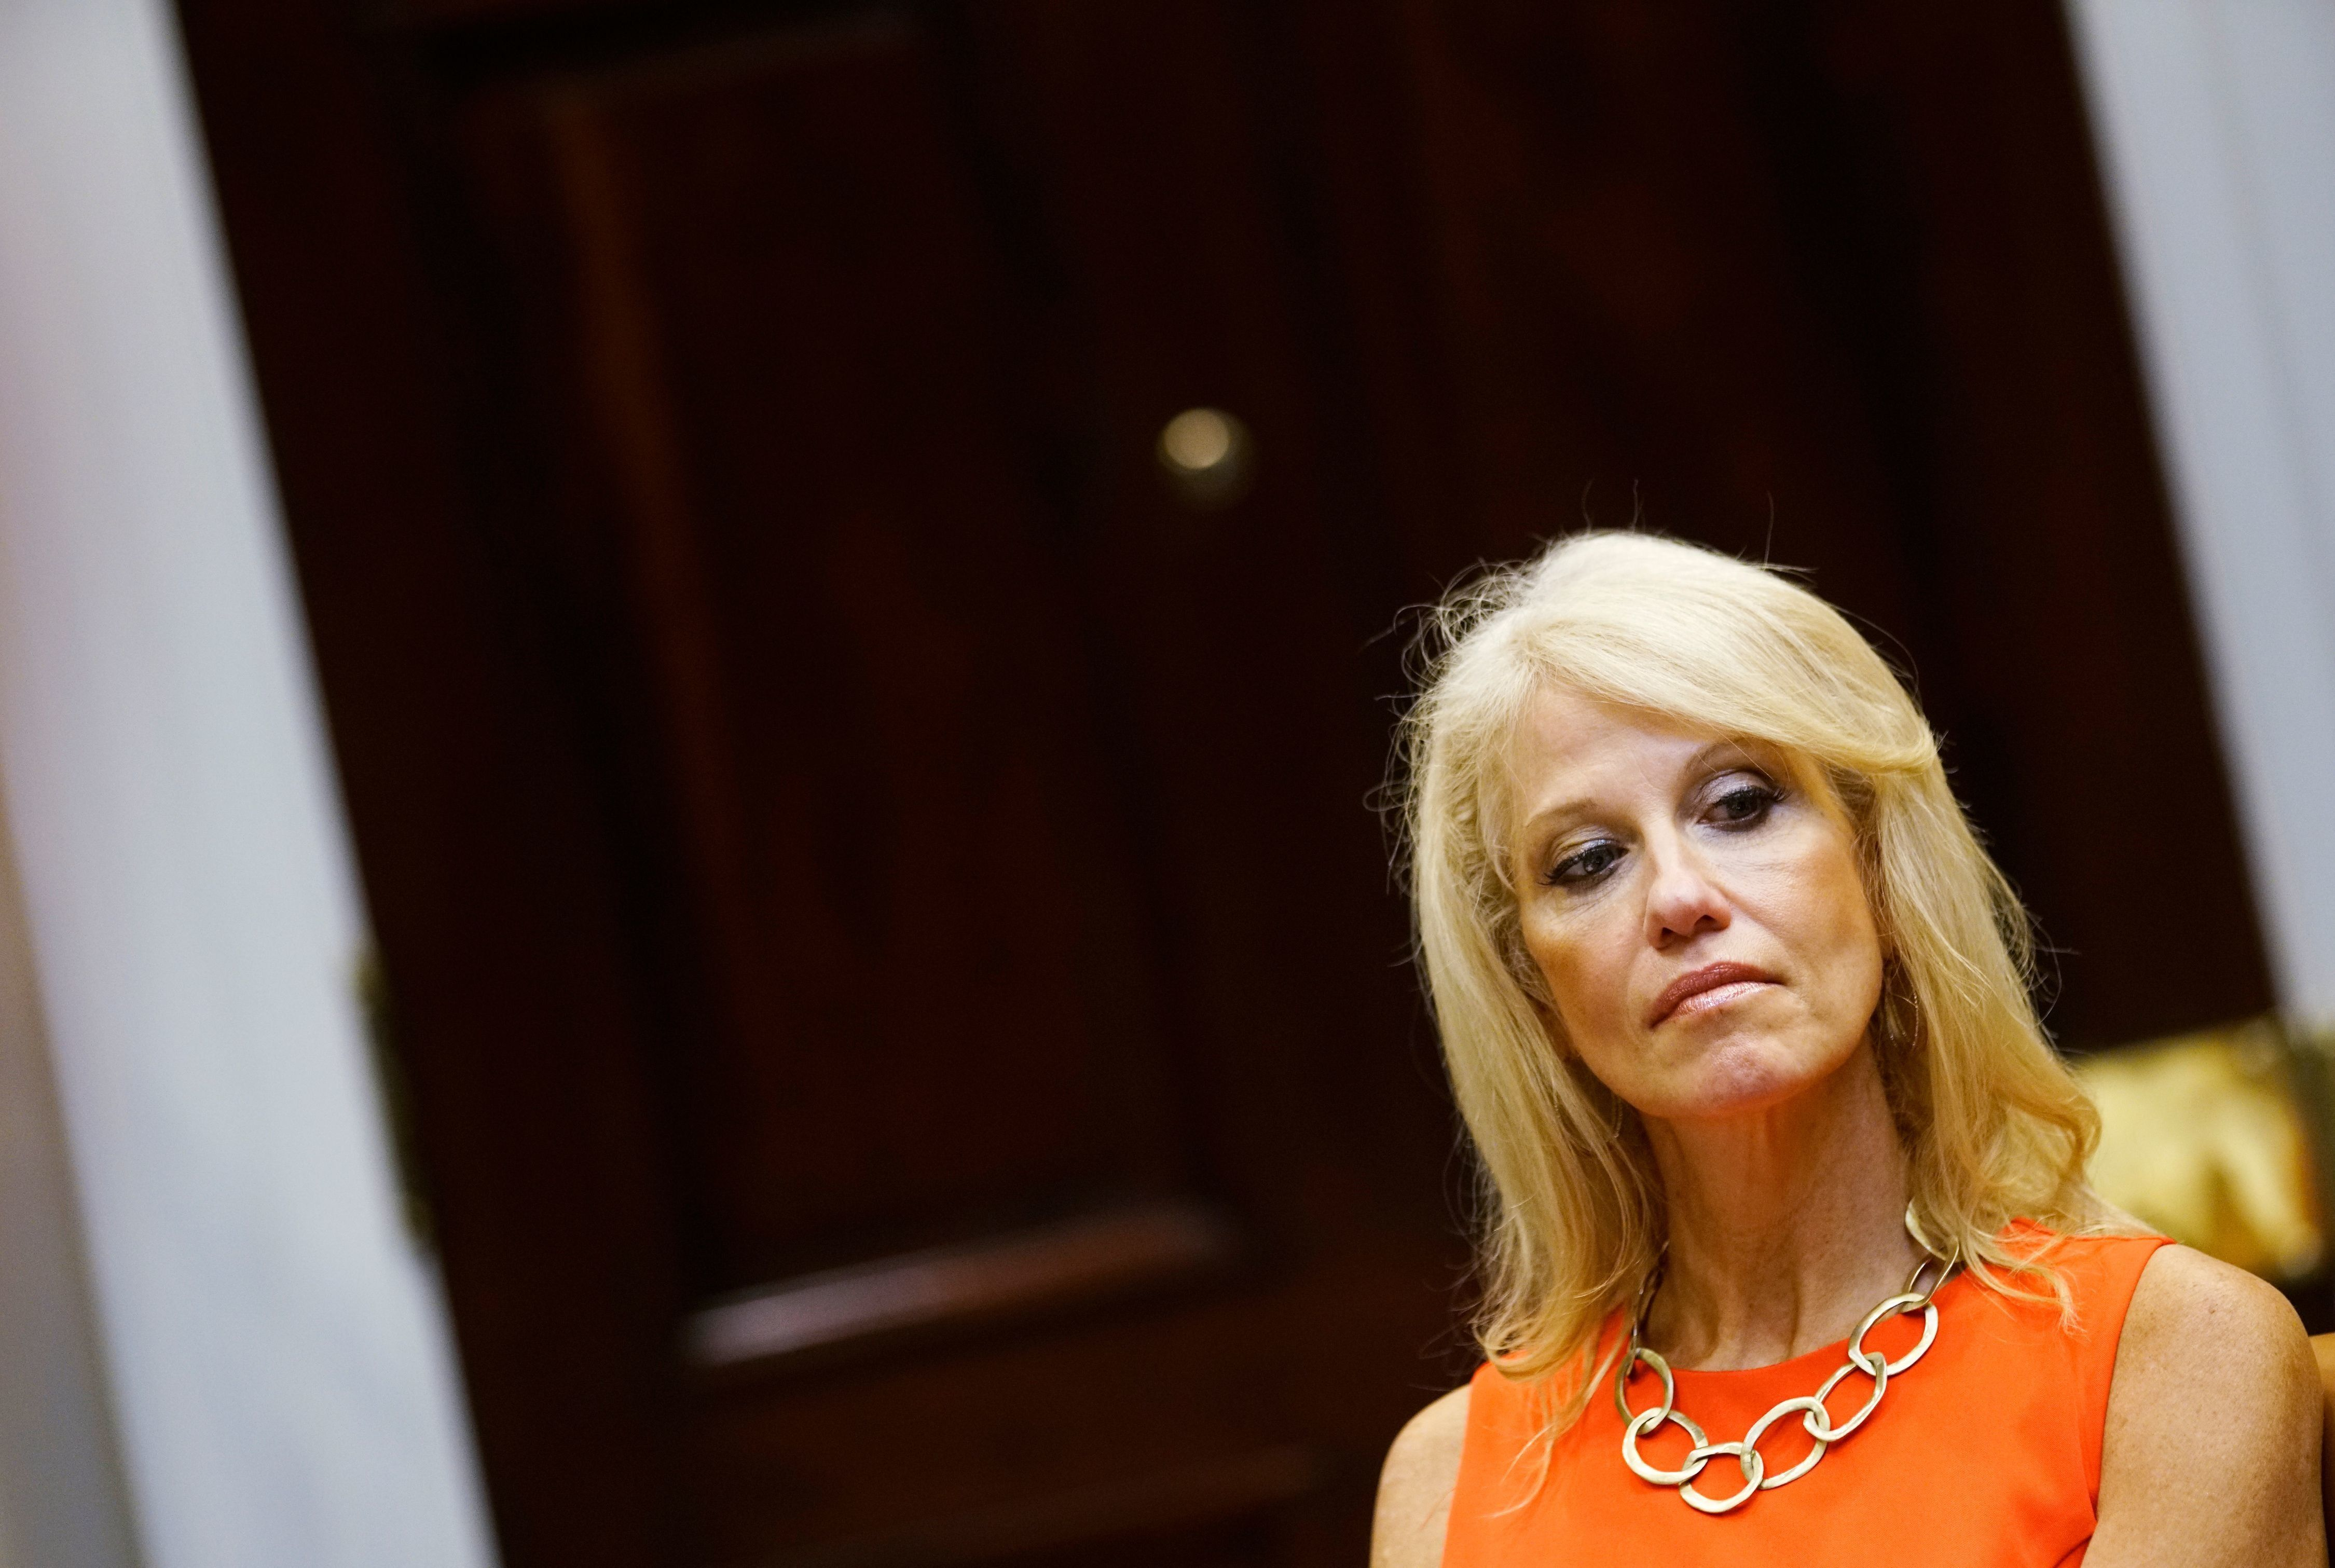 Counselor to the President Kellyanne Conway attends an announcement by US President Donald Trump on a grant for drug-free communities support program in the Roosevelt Room of the White House in Washington, DC on August 29, 2018. (Photo by MANDEL NGAN / AFP)        (Photo credit should read MANDEL NGAN/AFP/Getty Images)